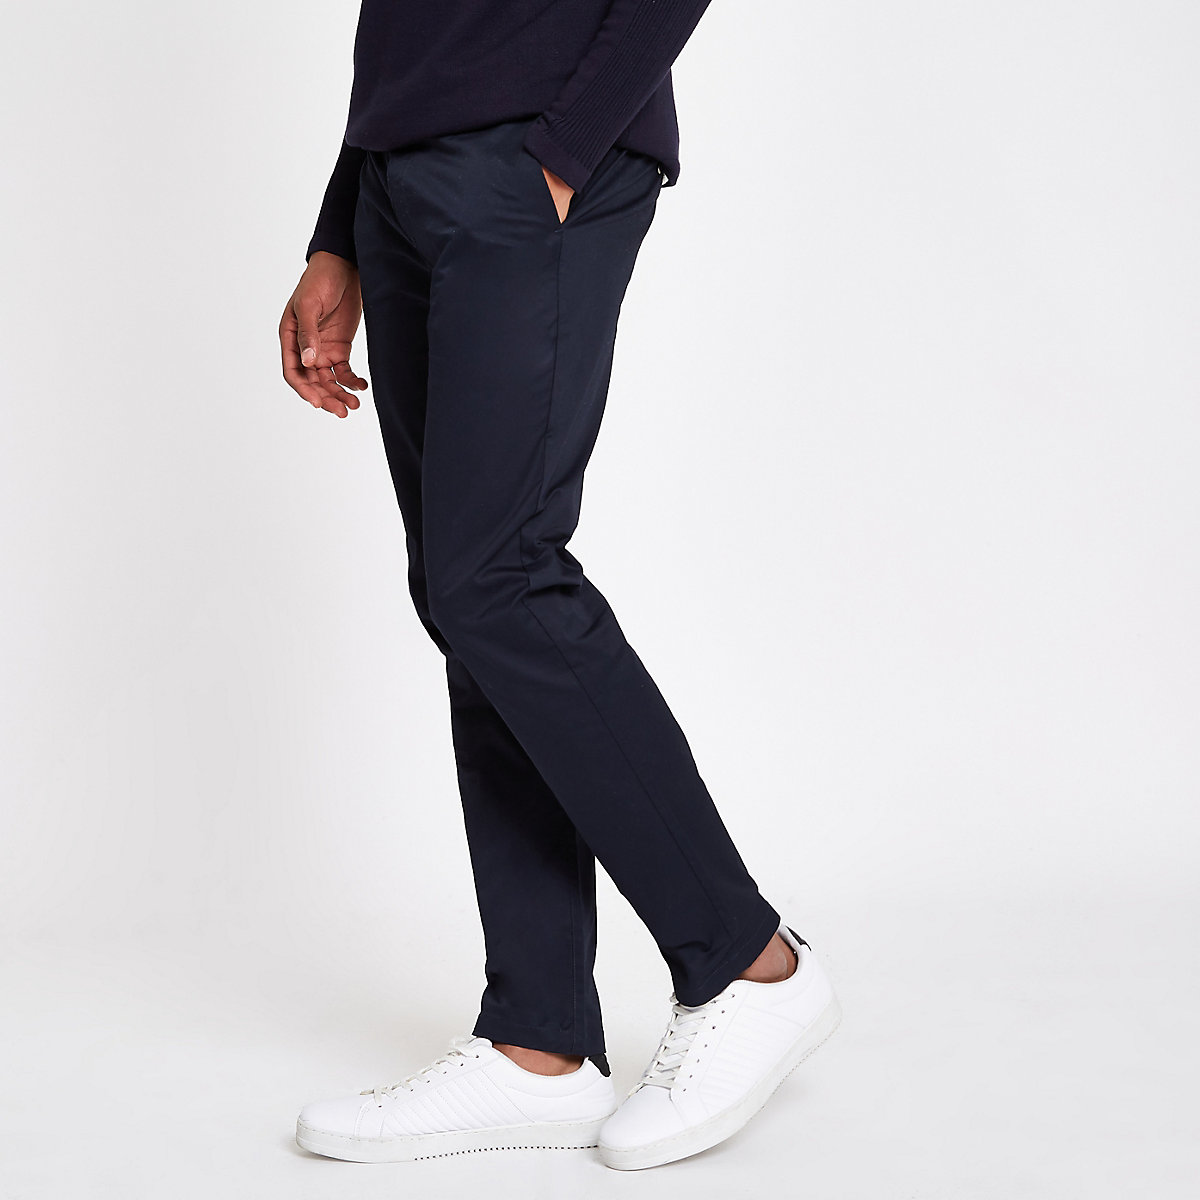 Navy slim fit chino pants